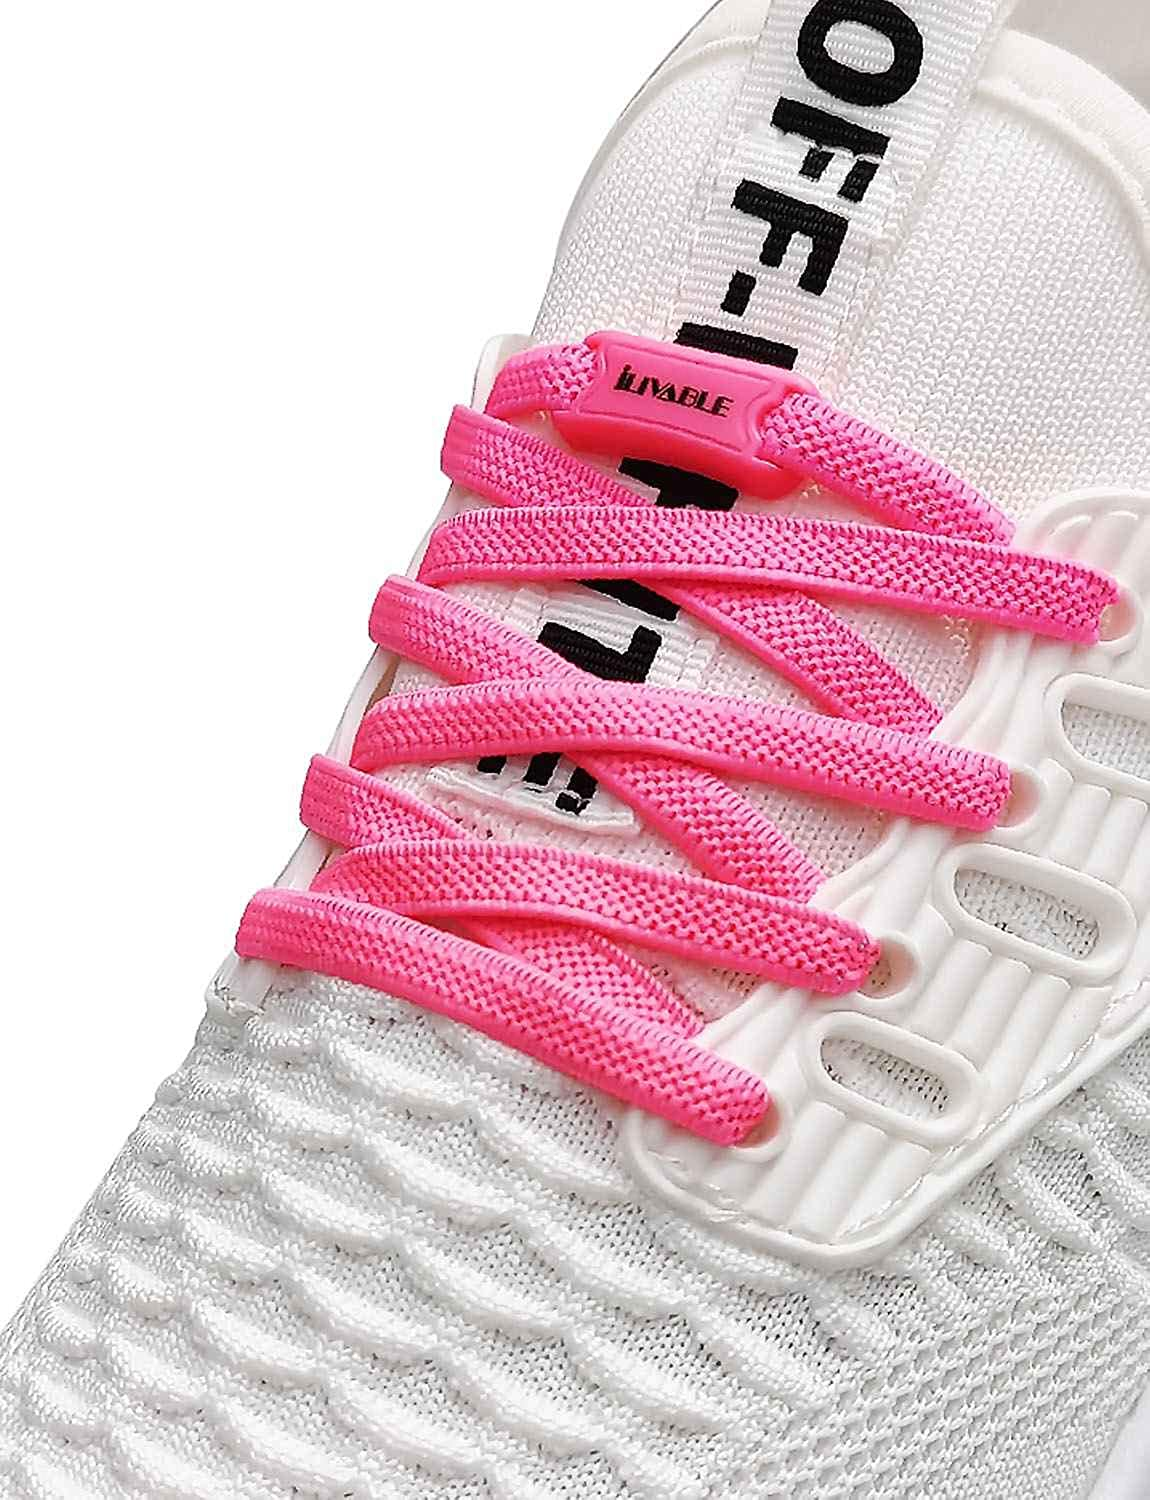 ILIVABLE Elastic No Tie Shoelaces for Kids and Adults, Elastic N